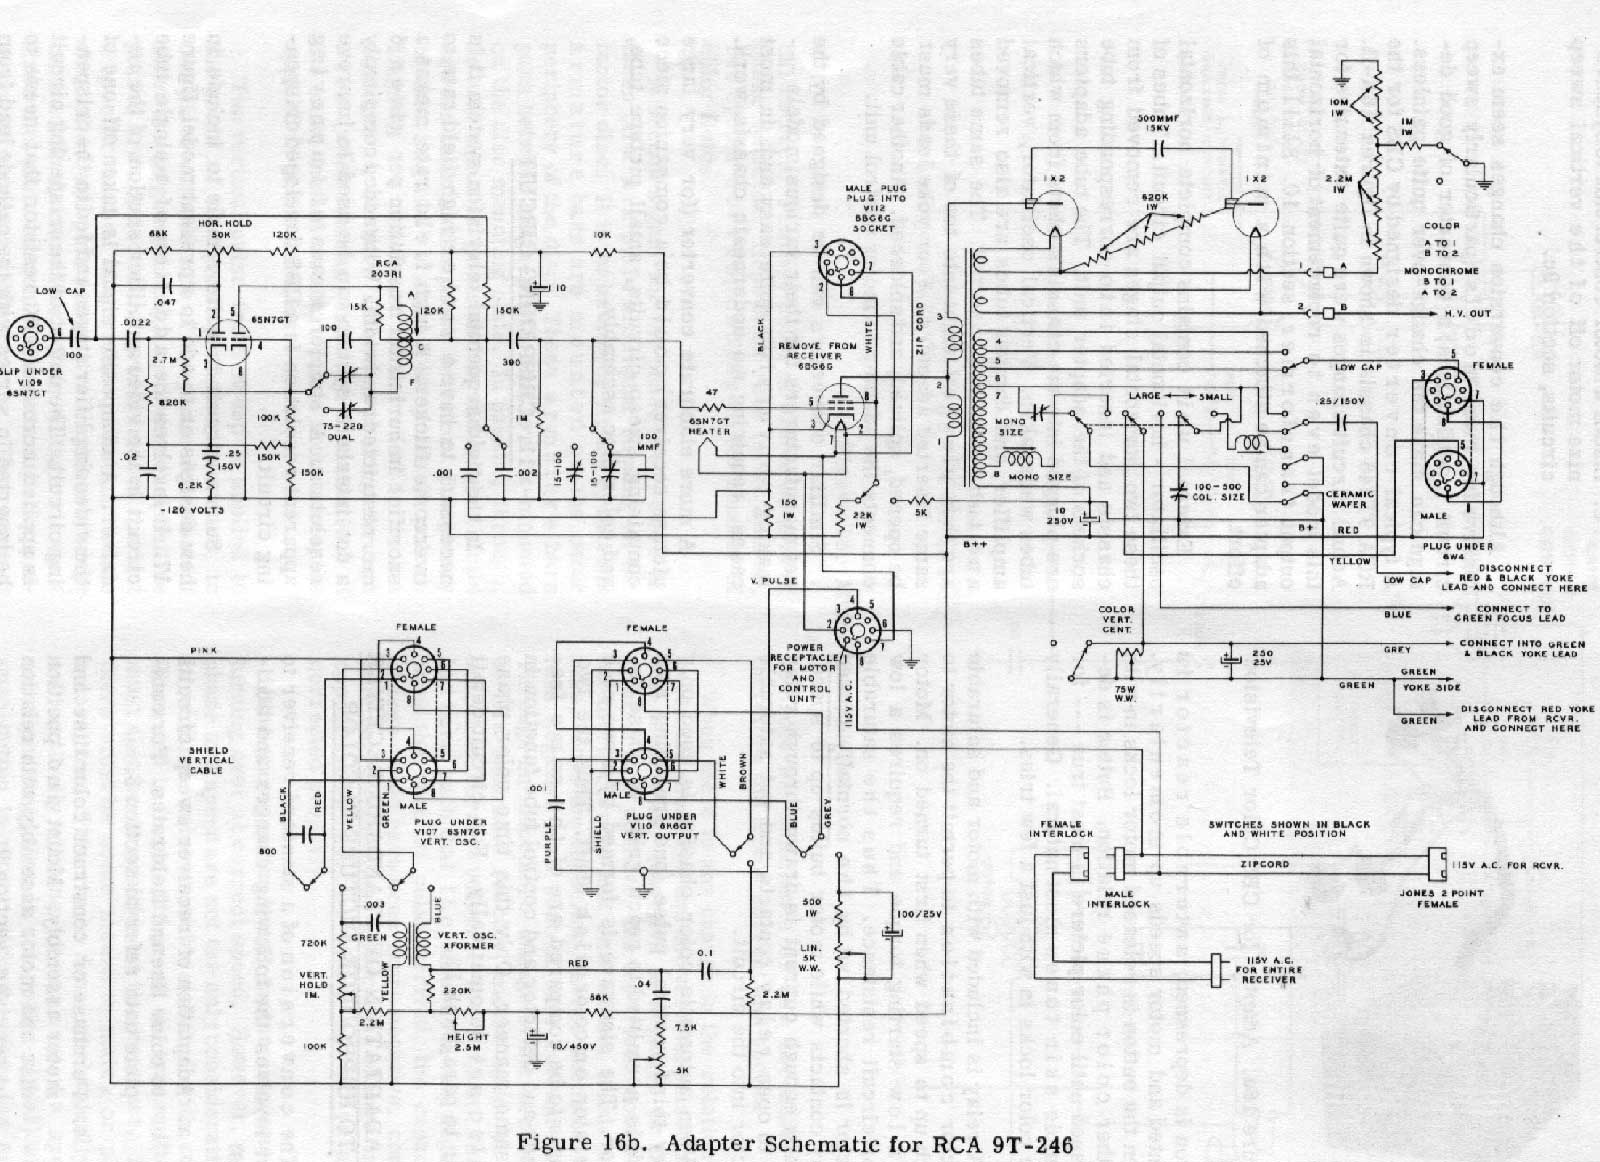 Samsung Hcl5515w Tv Schematic Diagrams Worksheet And Wiring Diagram Car Wire Color Center U2022 Rh 207 246 123 107 Dlp Parts